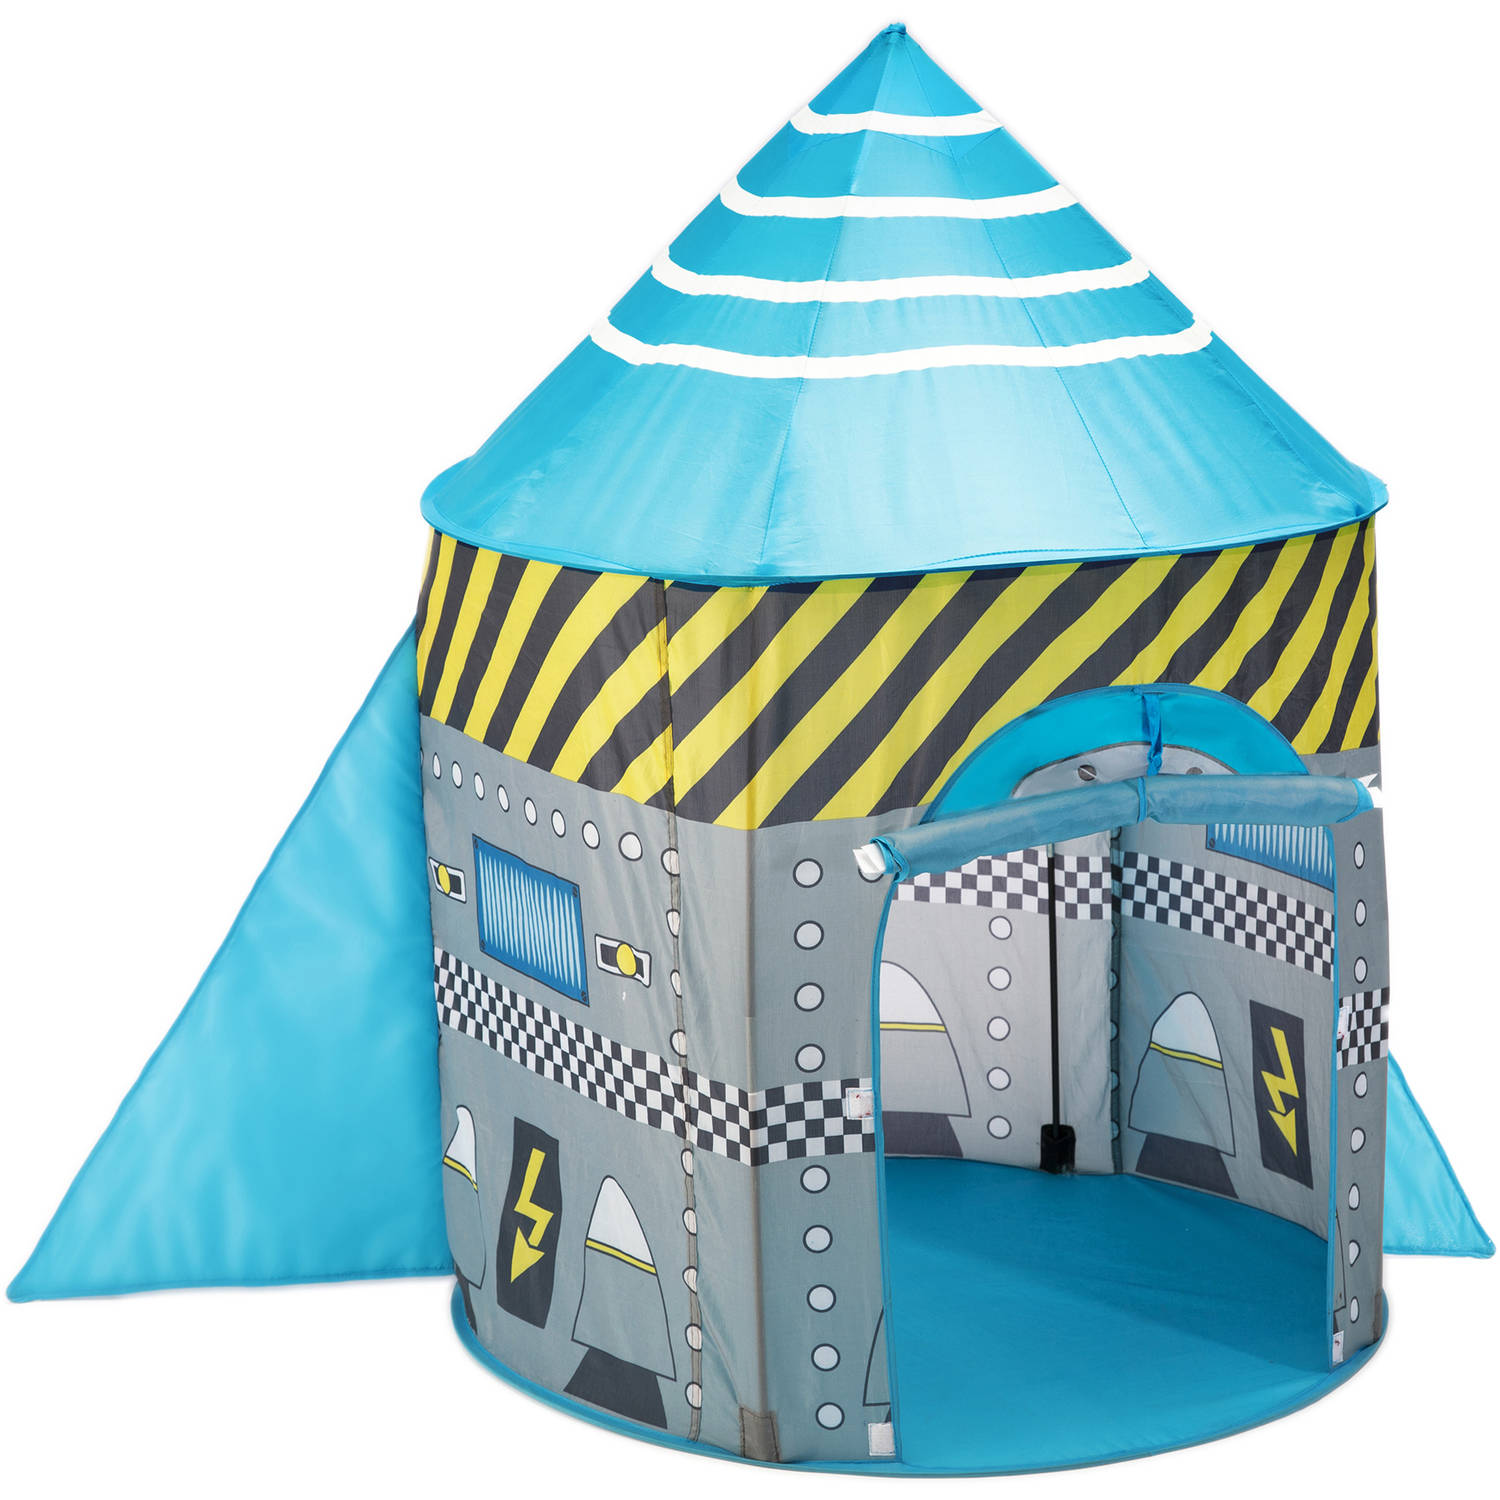 sc 1 st  Walmart & Fun2Give Pop-it-up Play Tent Space Rocket - Walmart.com